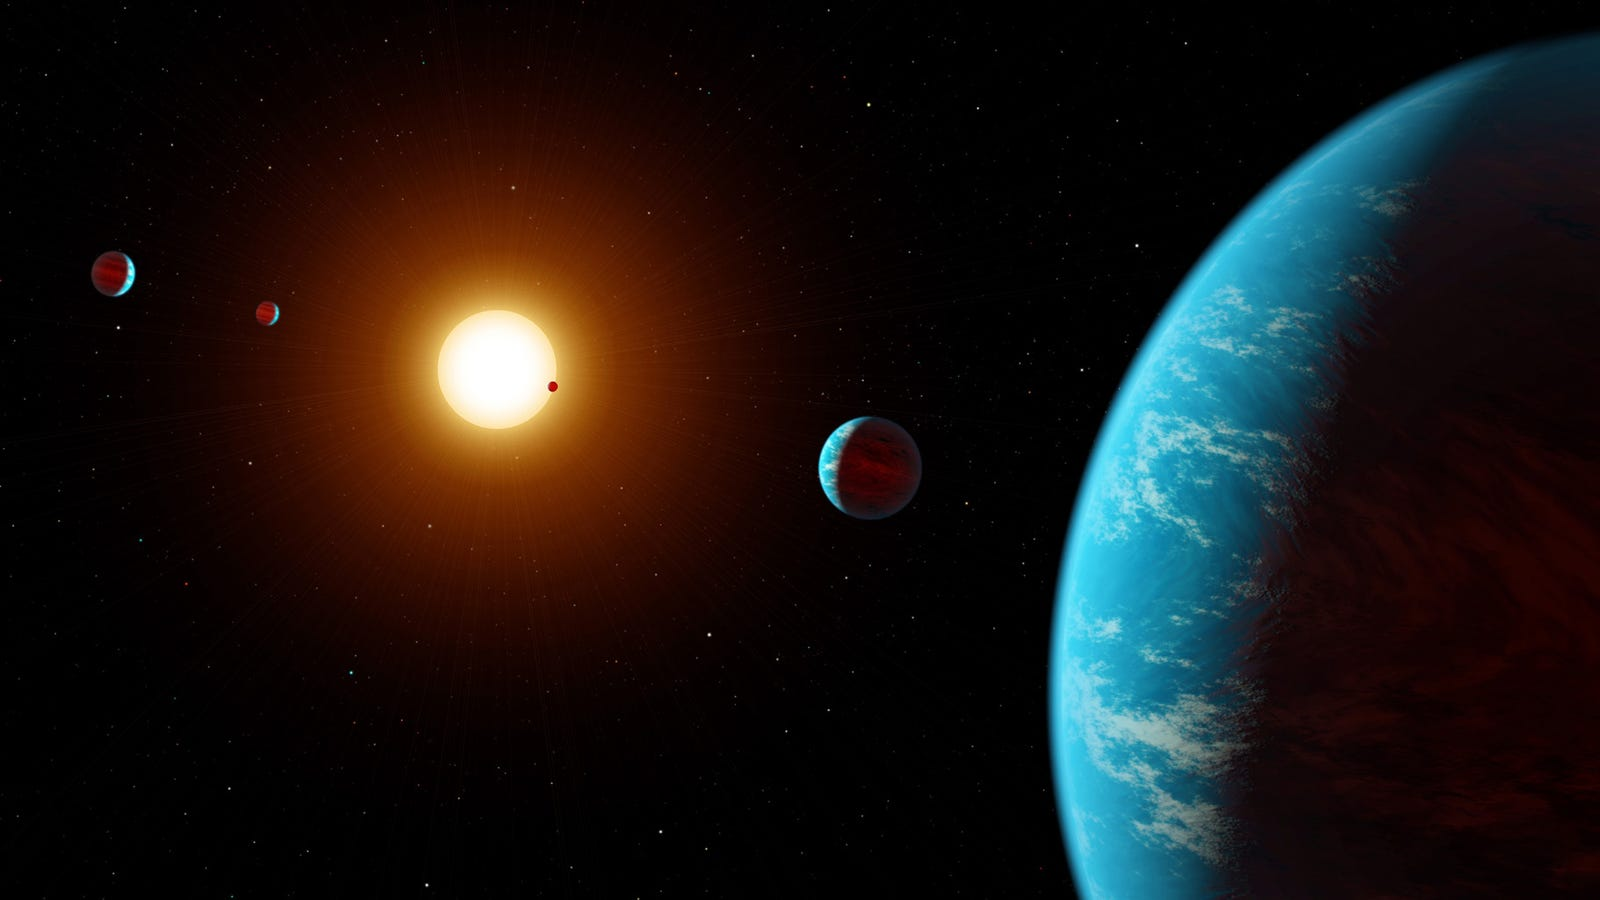 Star System With Five Rocky Planets Discovered by Amateur Astronomers